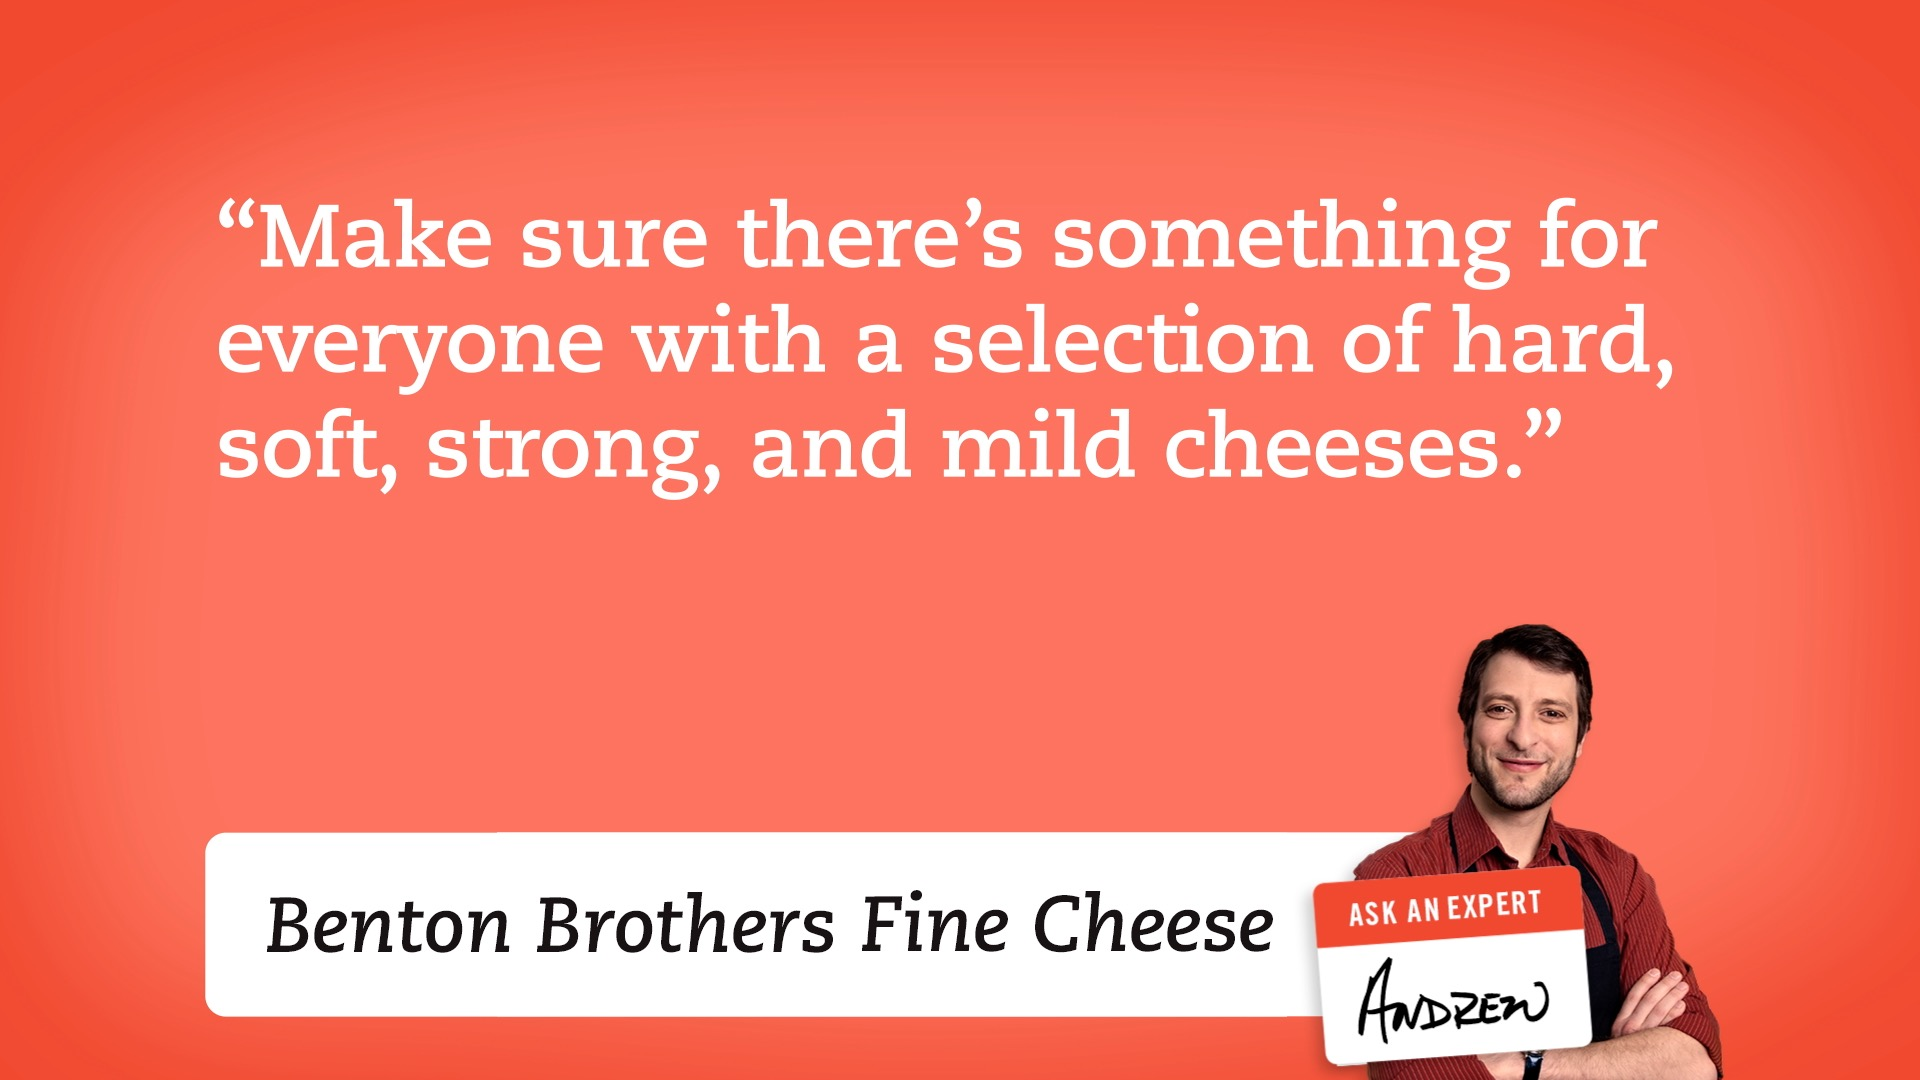 Make sure there's something for everyone with a selection of hard, soft, strong and milld cheese.